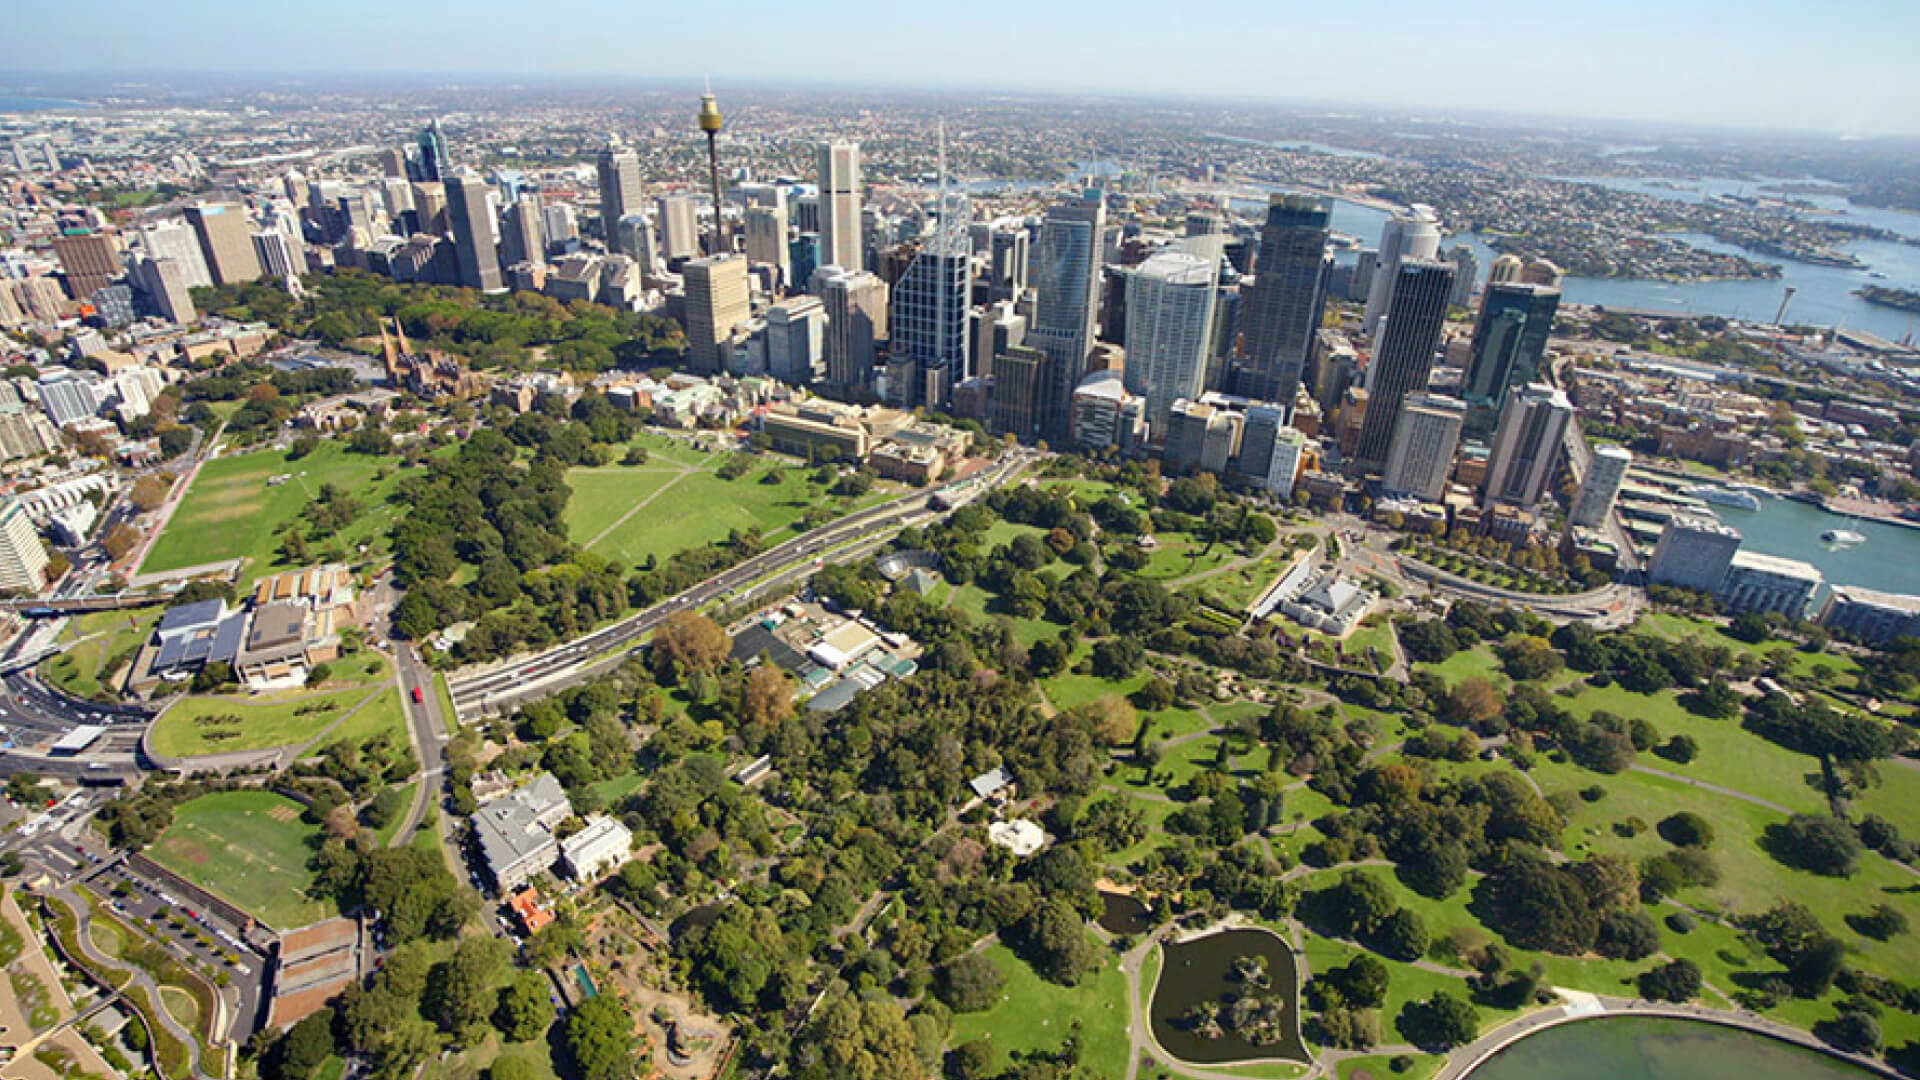 bird's eye view of Royal Botanic Gardens